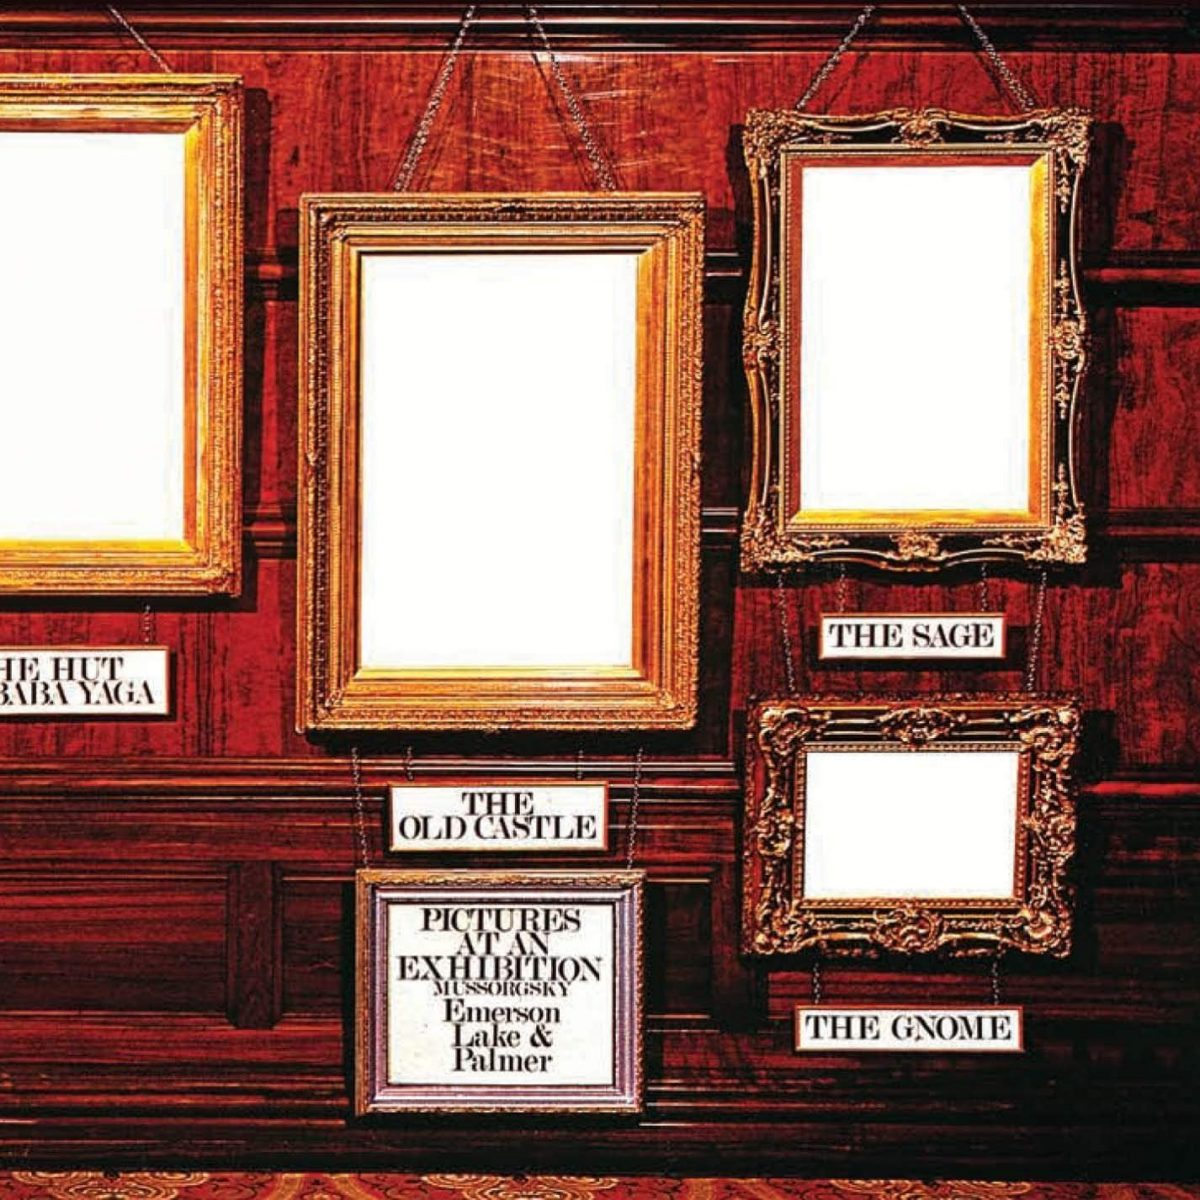 Emerson Lake Palmer Pictures at an Exhibition